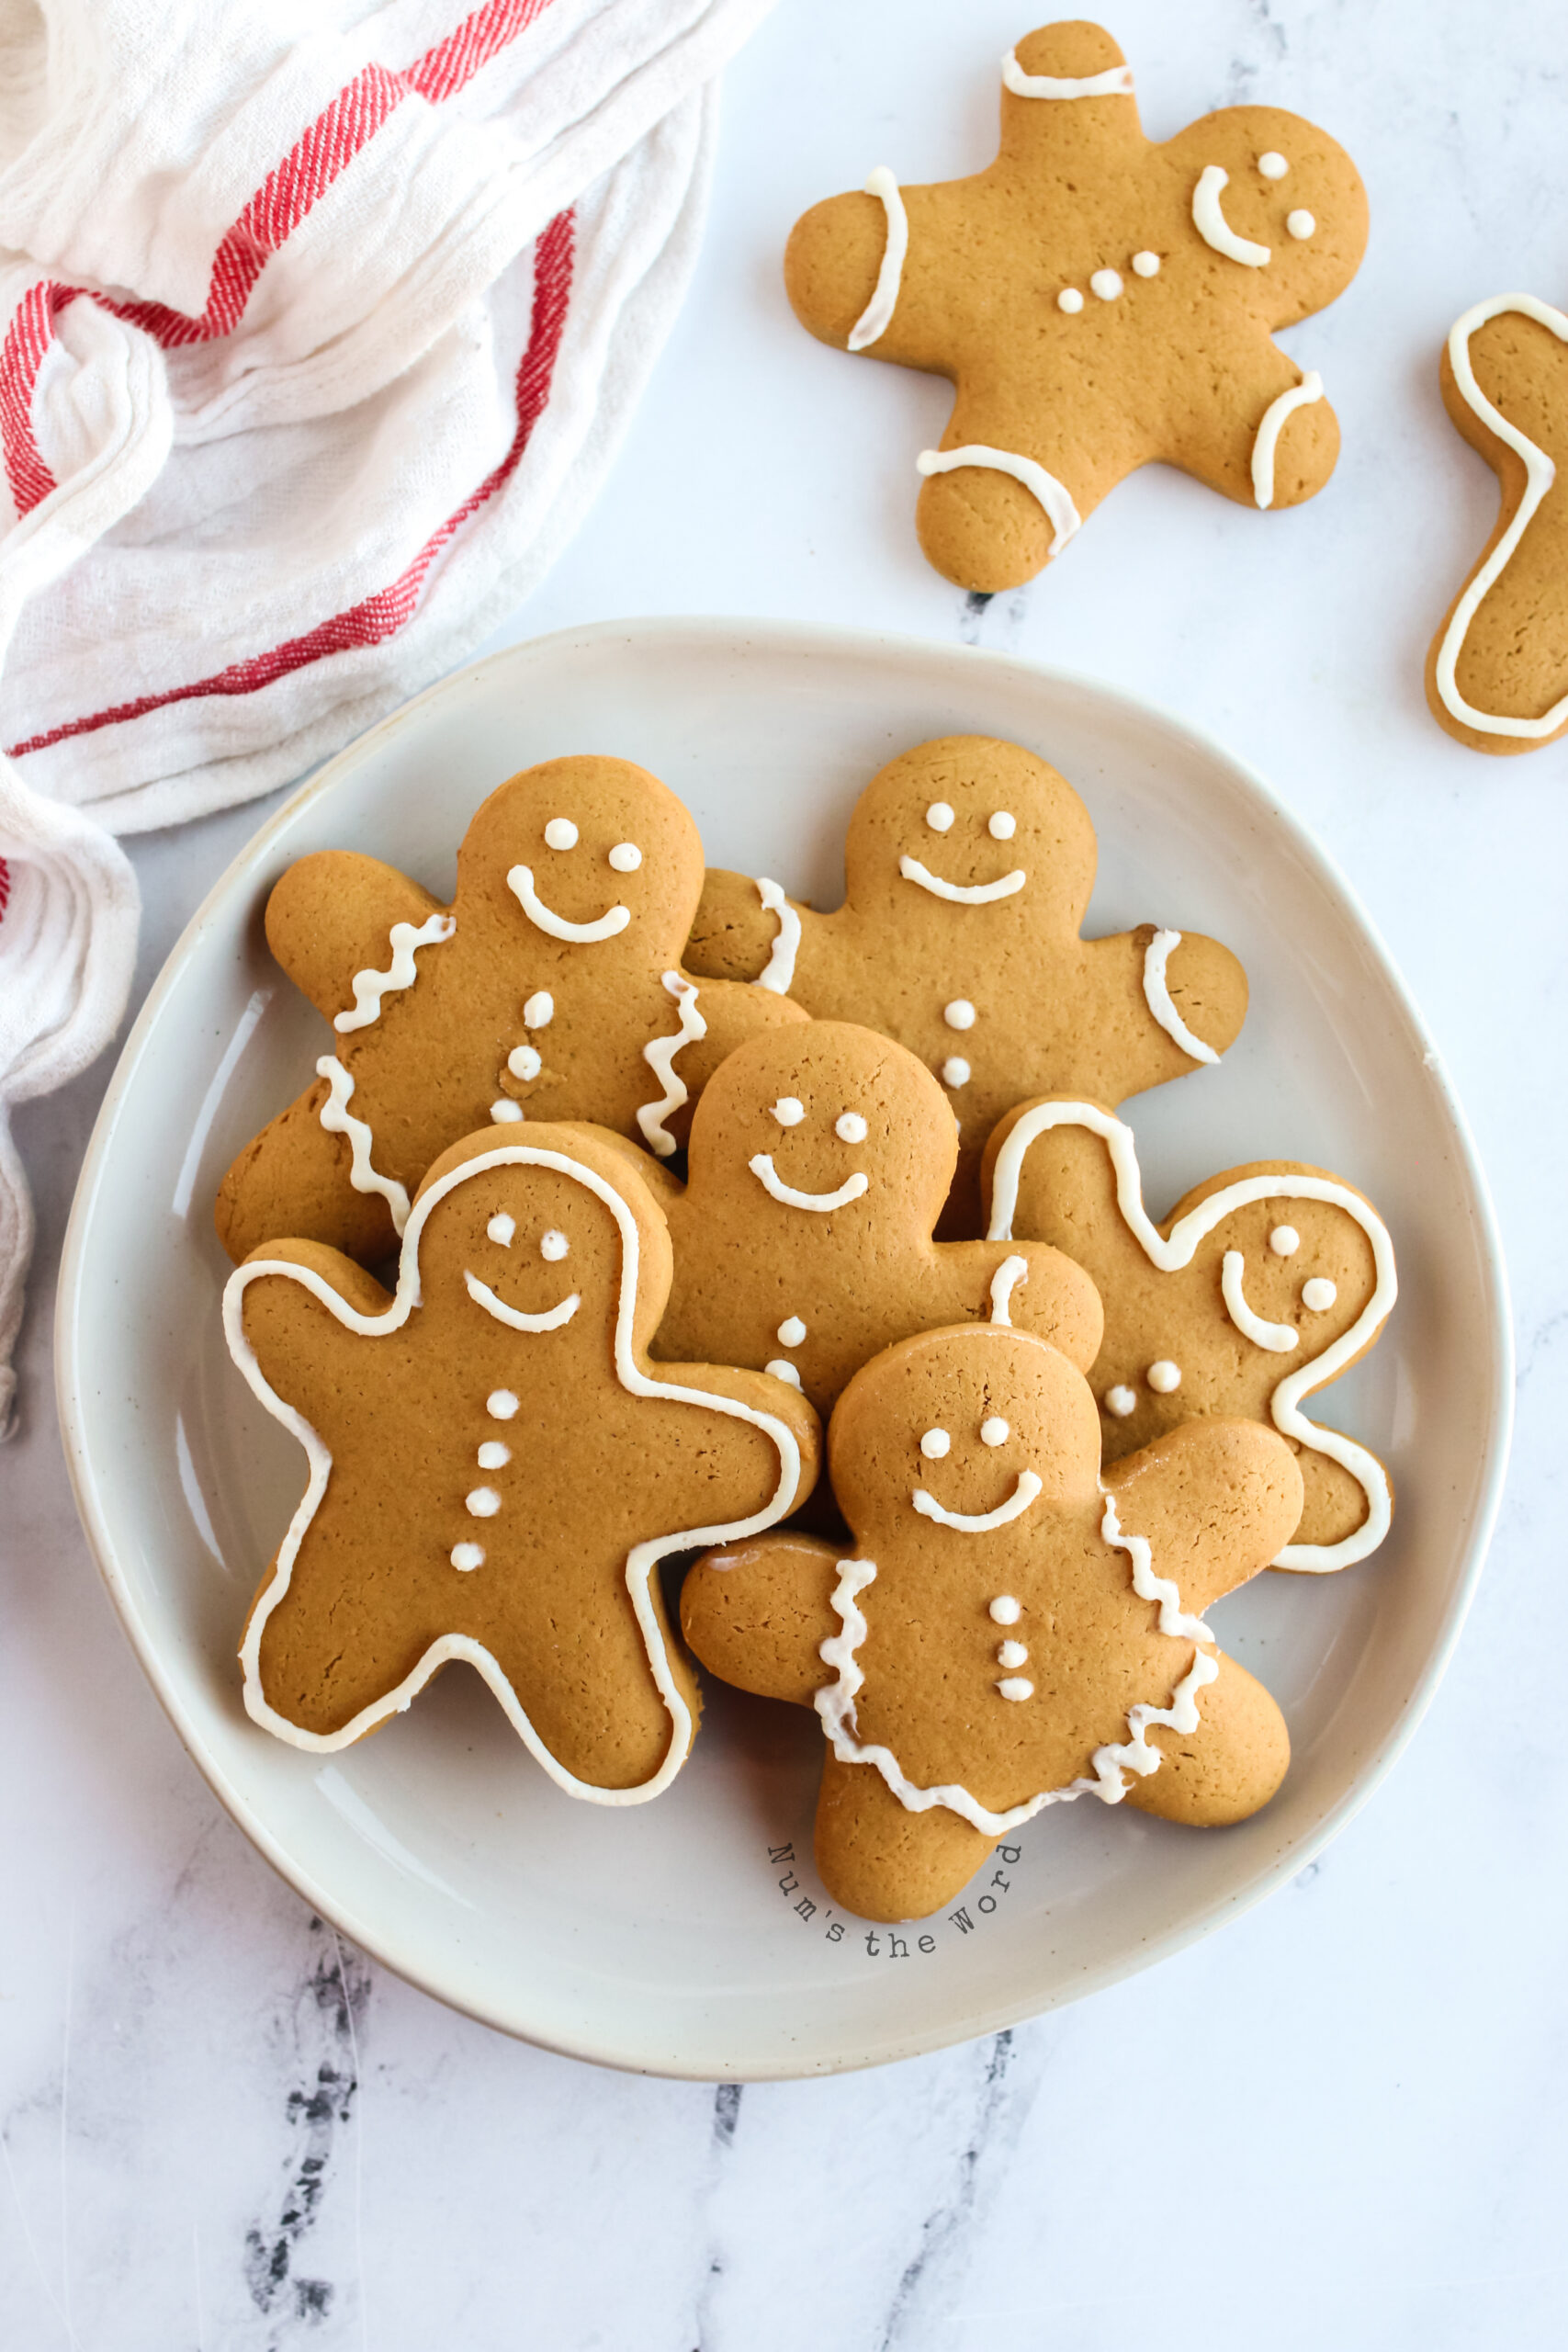 decorated gingerbread cookies on a plate ready to be eaten